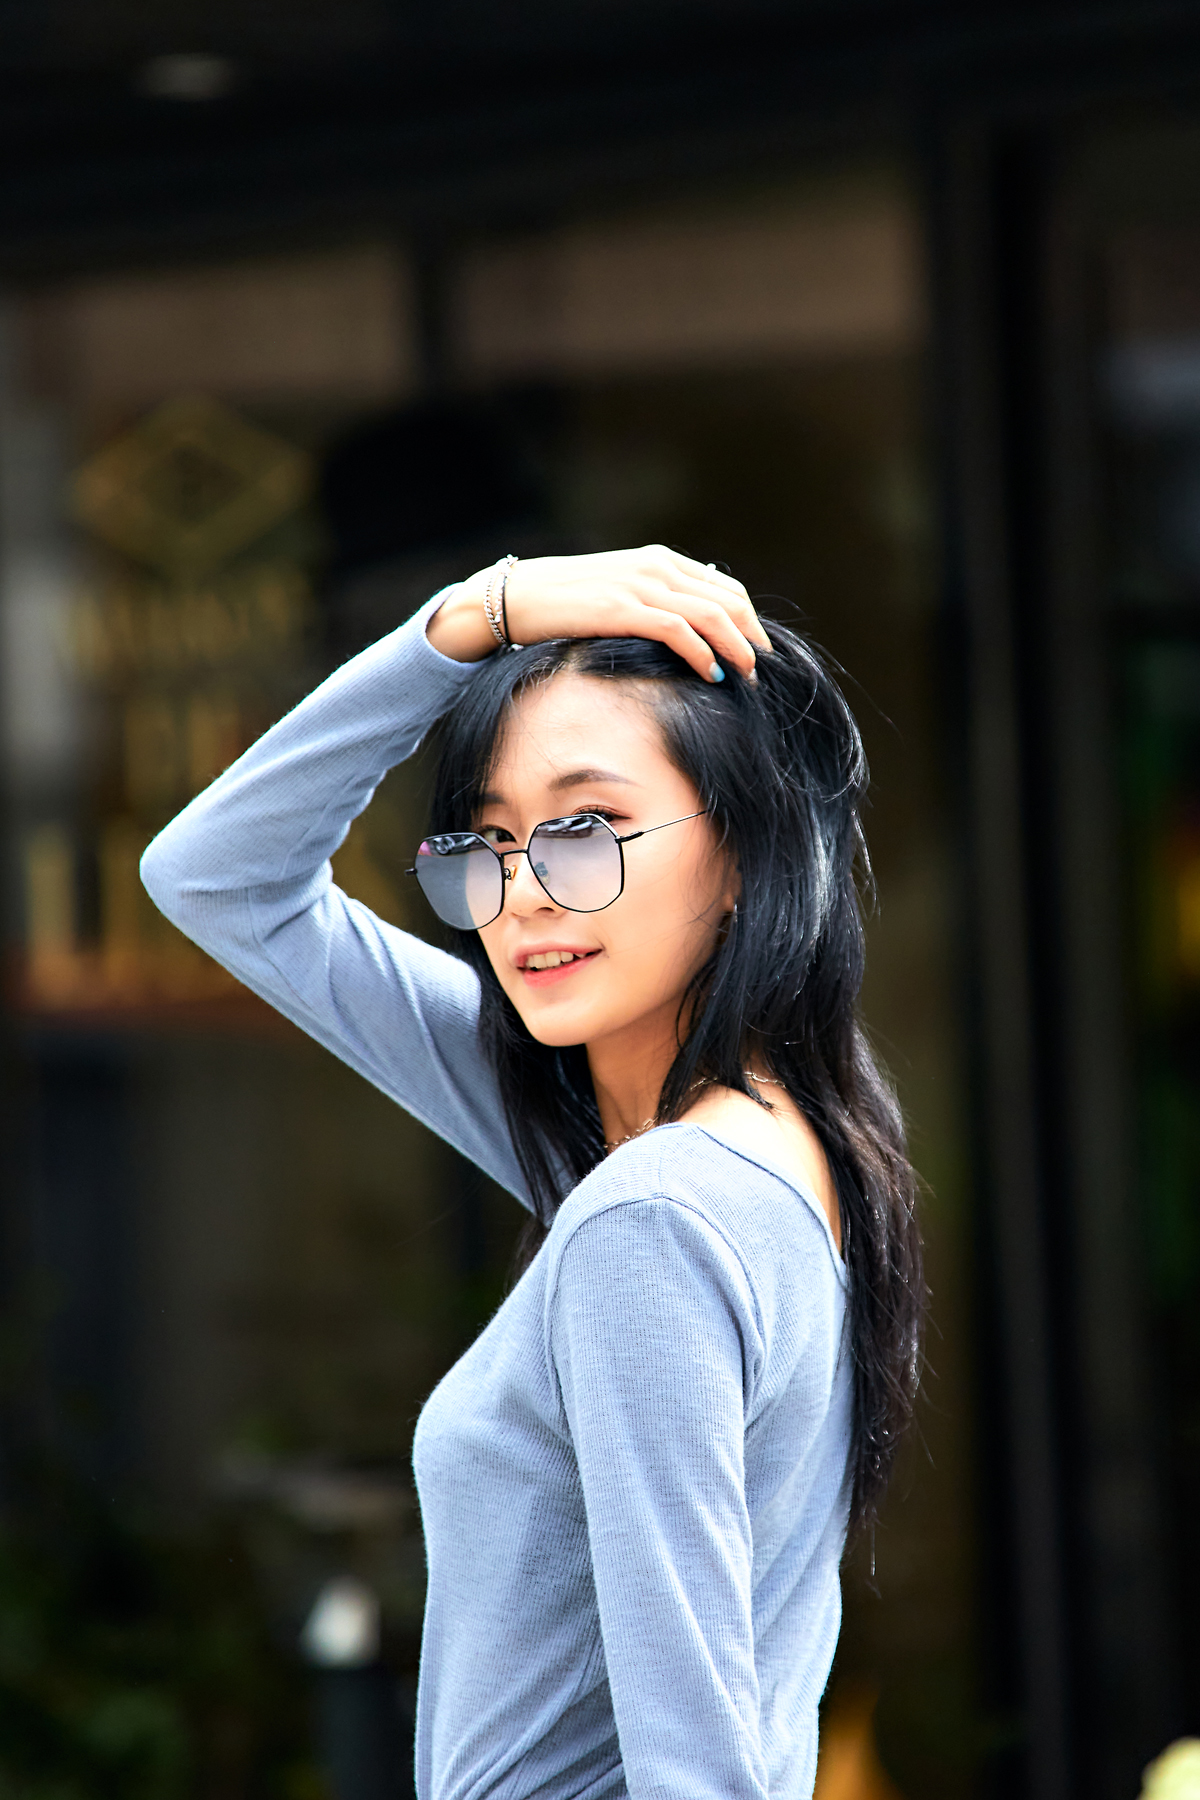 EYEWEAR AFEEL SUNGLASSES STREETFASHION CONTENT SNAP IN SEOUL 2020